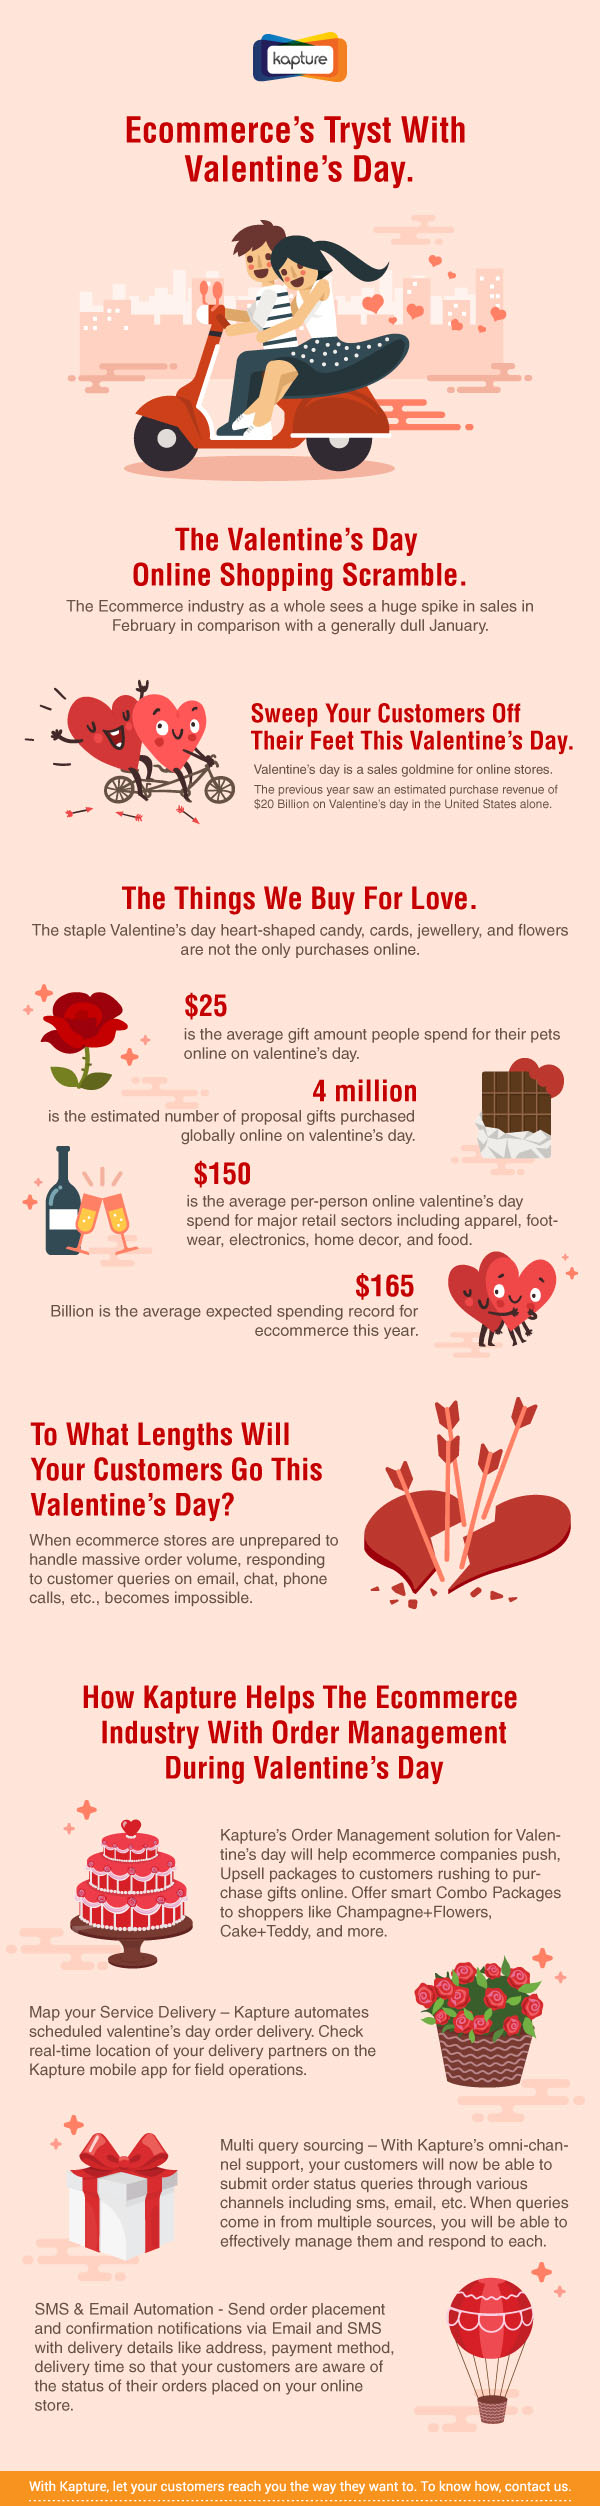 Ecommerce stores need to be well prepared to handle high order volume on Valentine's Day. Kapture Order Management helps v-day upselling, delivery automation, and multi-query handling. This infographic has all the info.